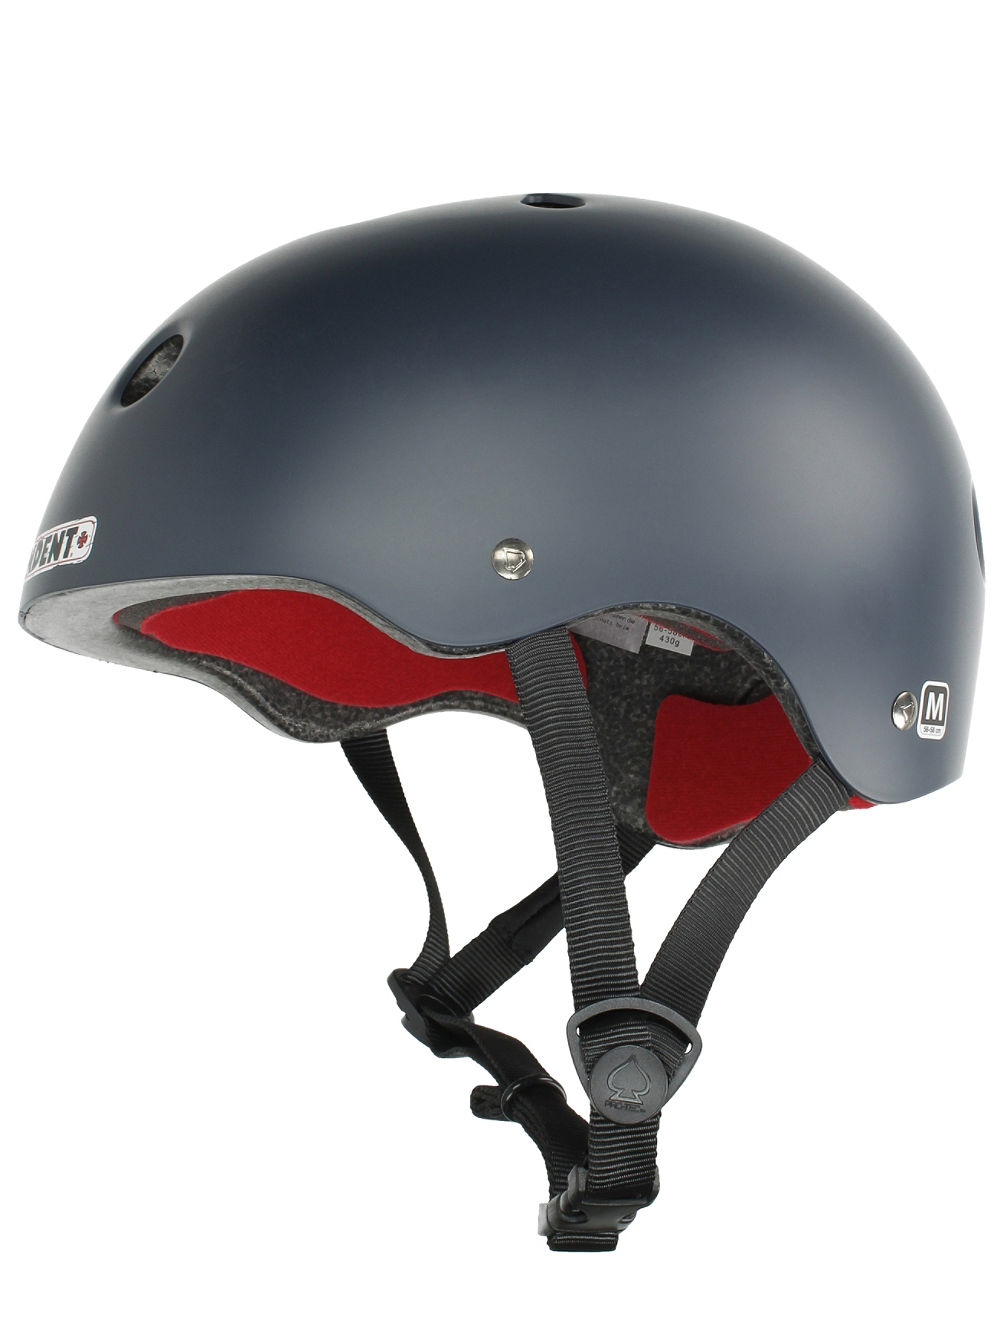 The Classic Independet Skate Helm